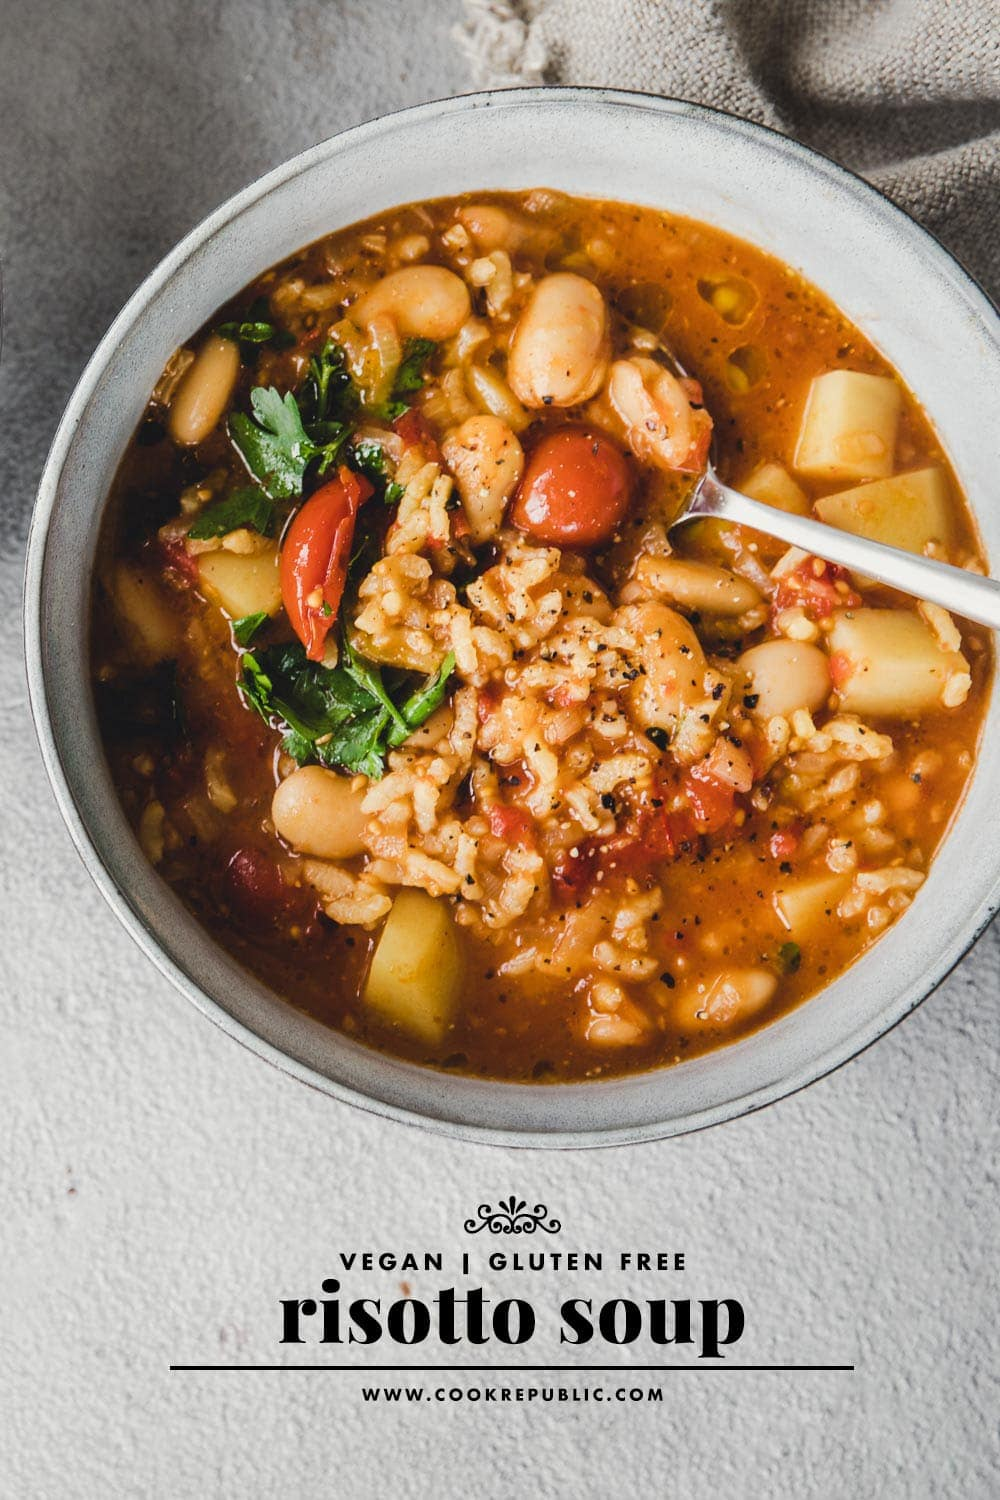 Risotto Soup - Butter Bean And Rice Minestrone / Cook Republic #vegan #risotto #vegansoup